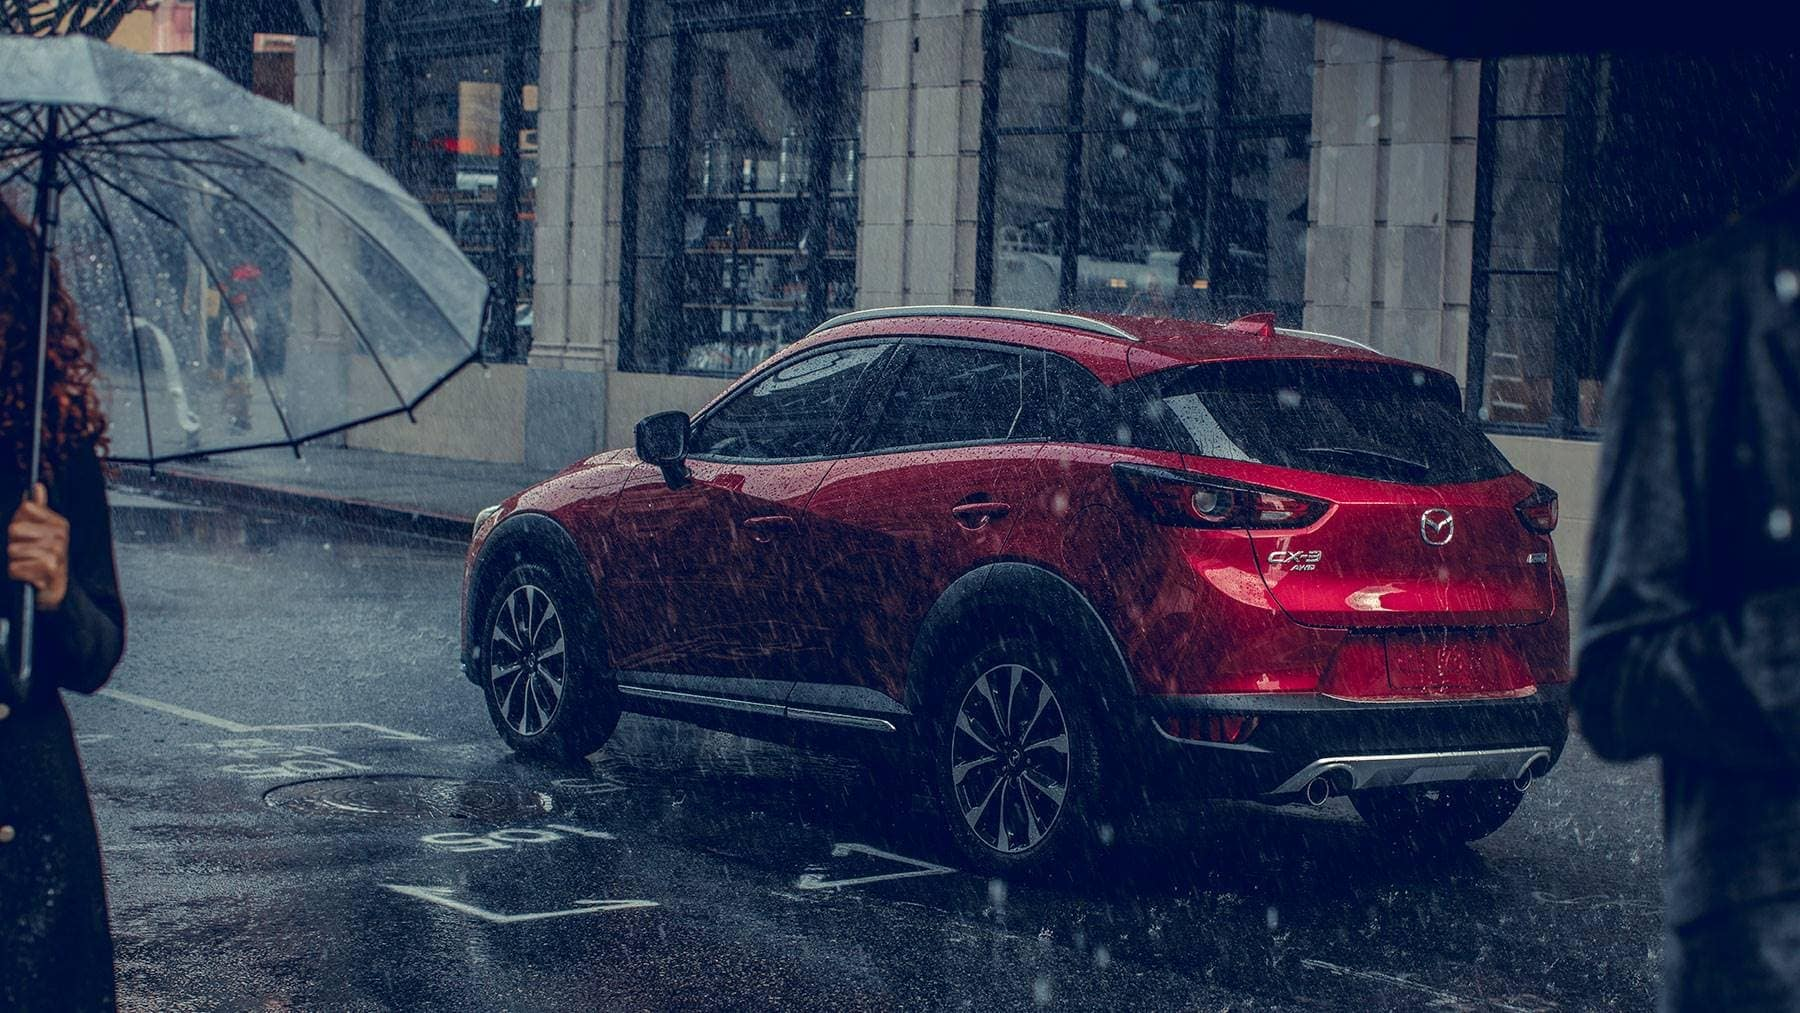 2019 Mazda CX-3 in the rain